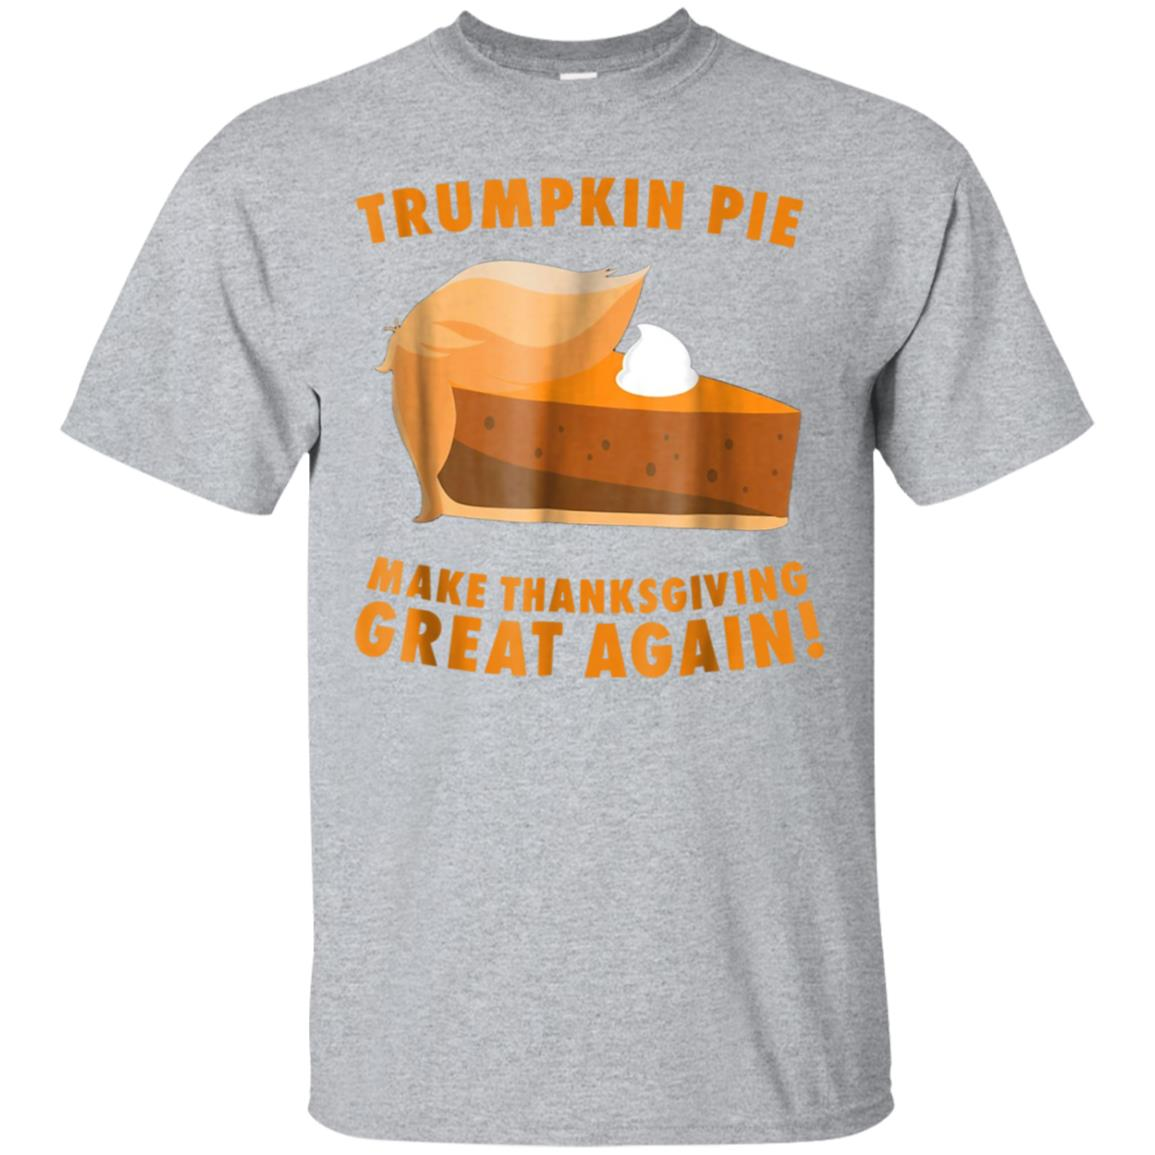 Funny Trumpkin Pie Make Thanksgiving Great Again Shirt Gift 99promocode